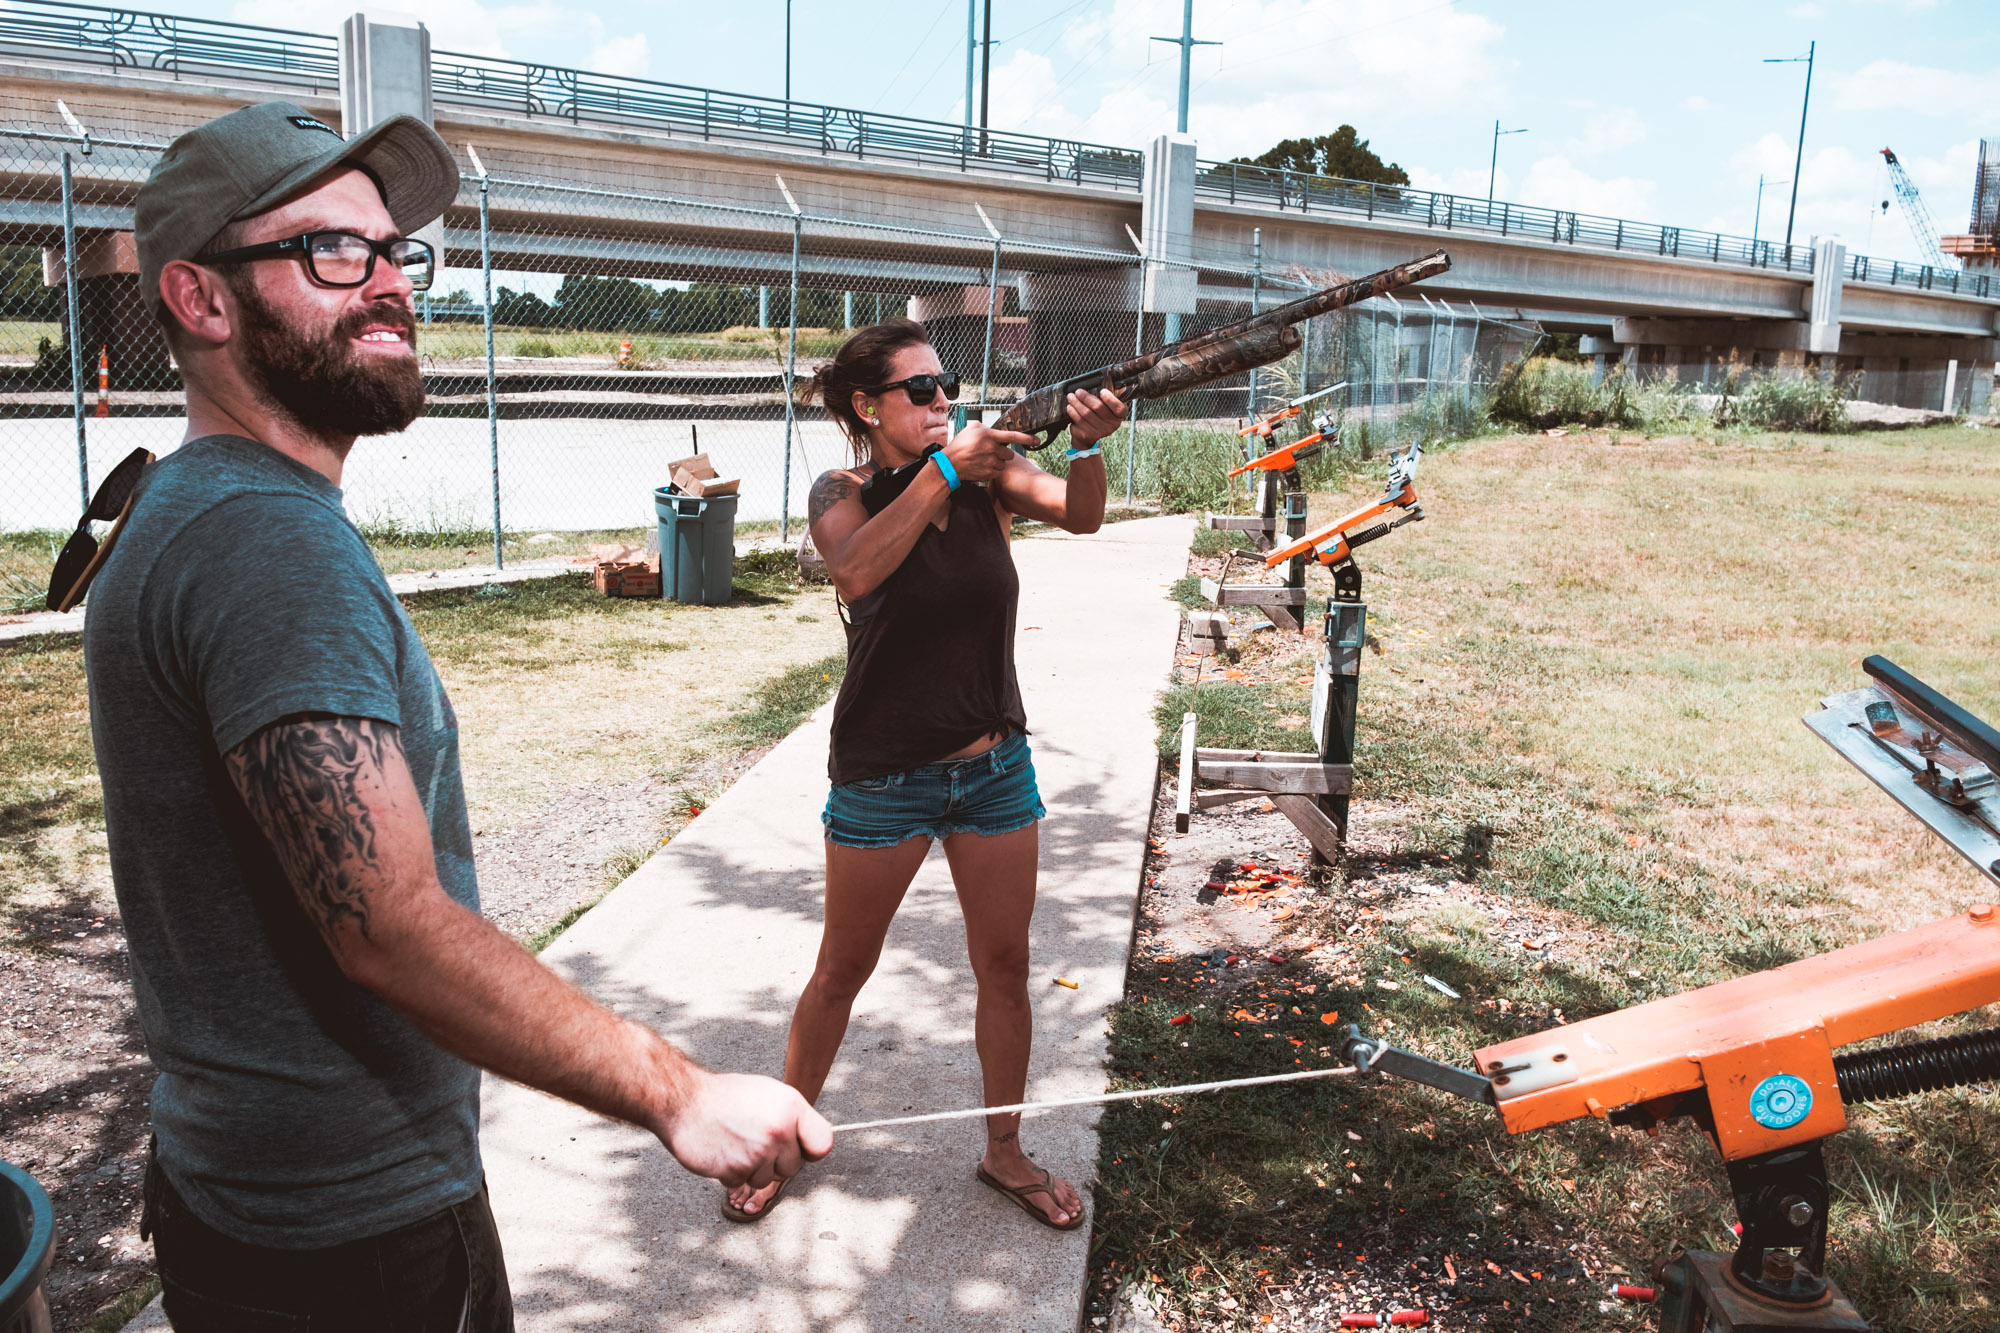 Bob and Michelle 12 Gauge Shotgun Garland Shooting Range